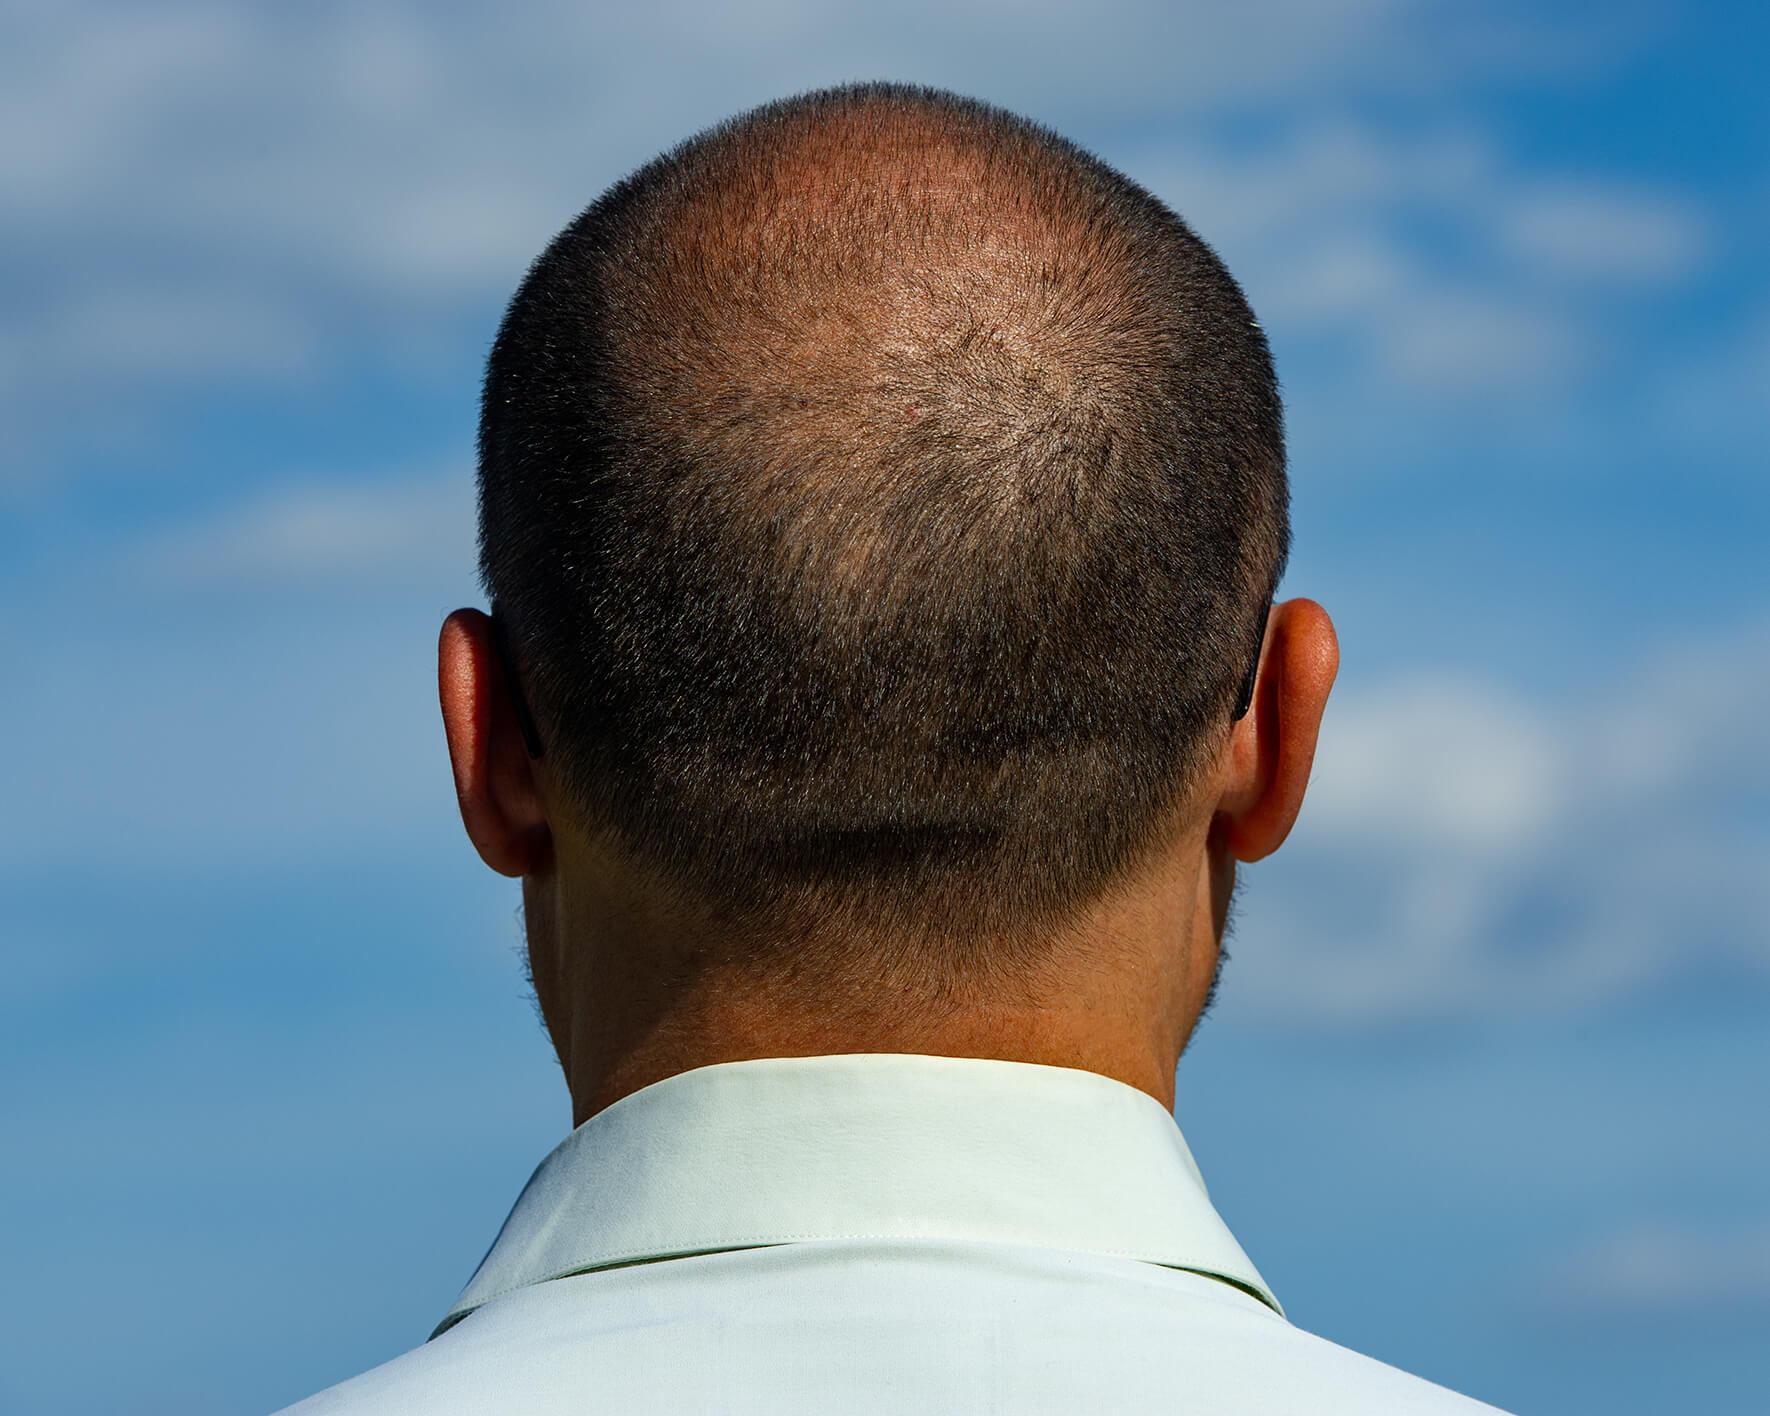 The back of a man's head, showing a balding crown